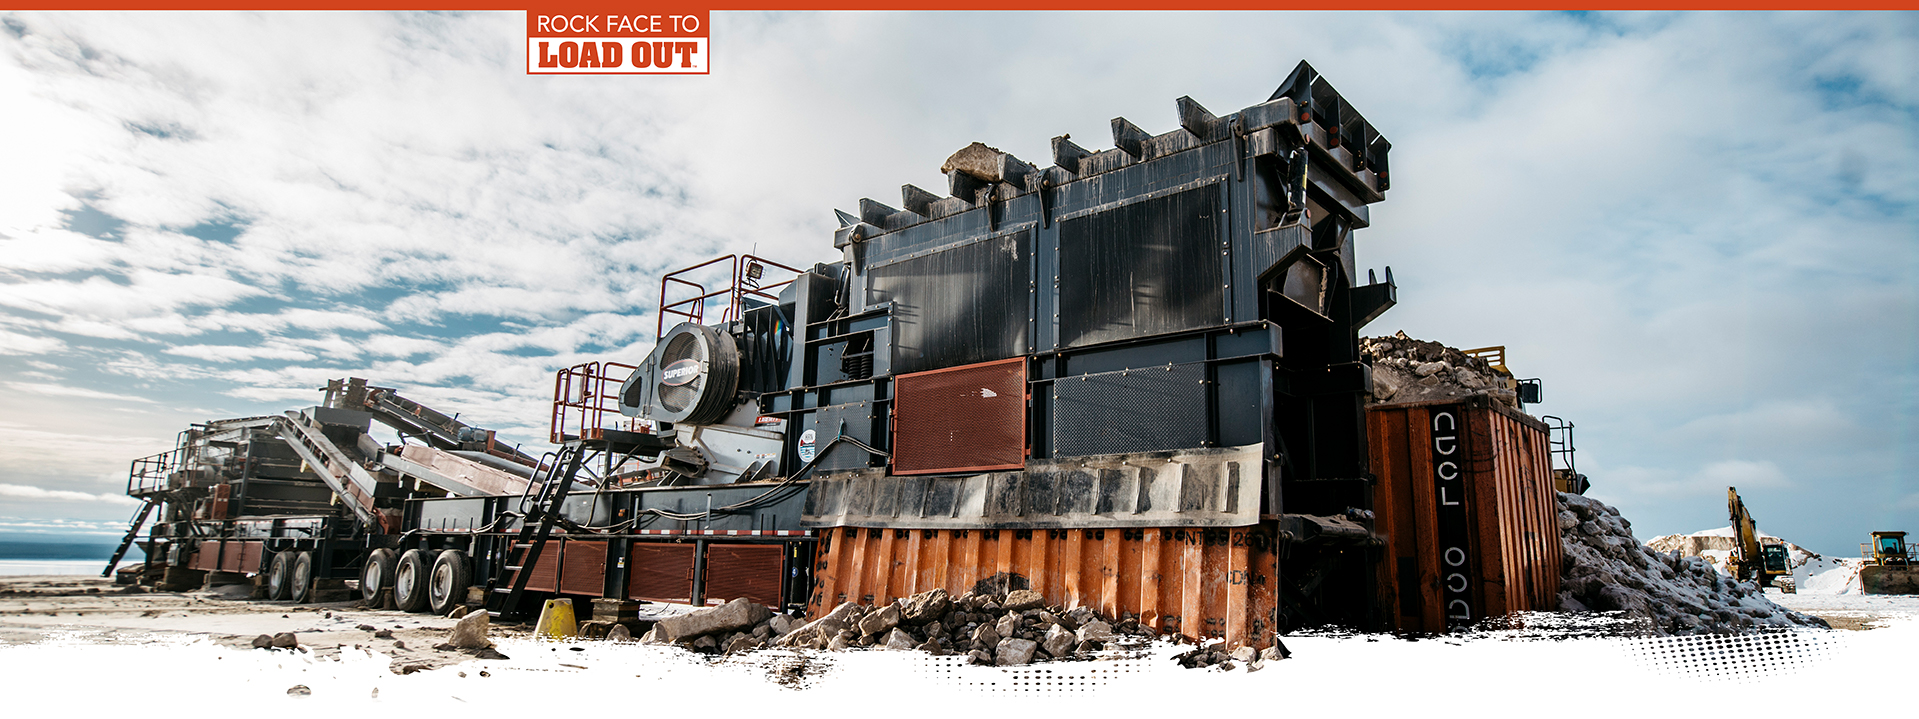 Rock Face to Load Out™ by Superior Industries